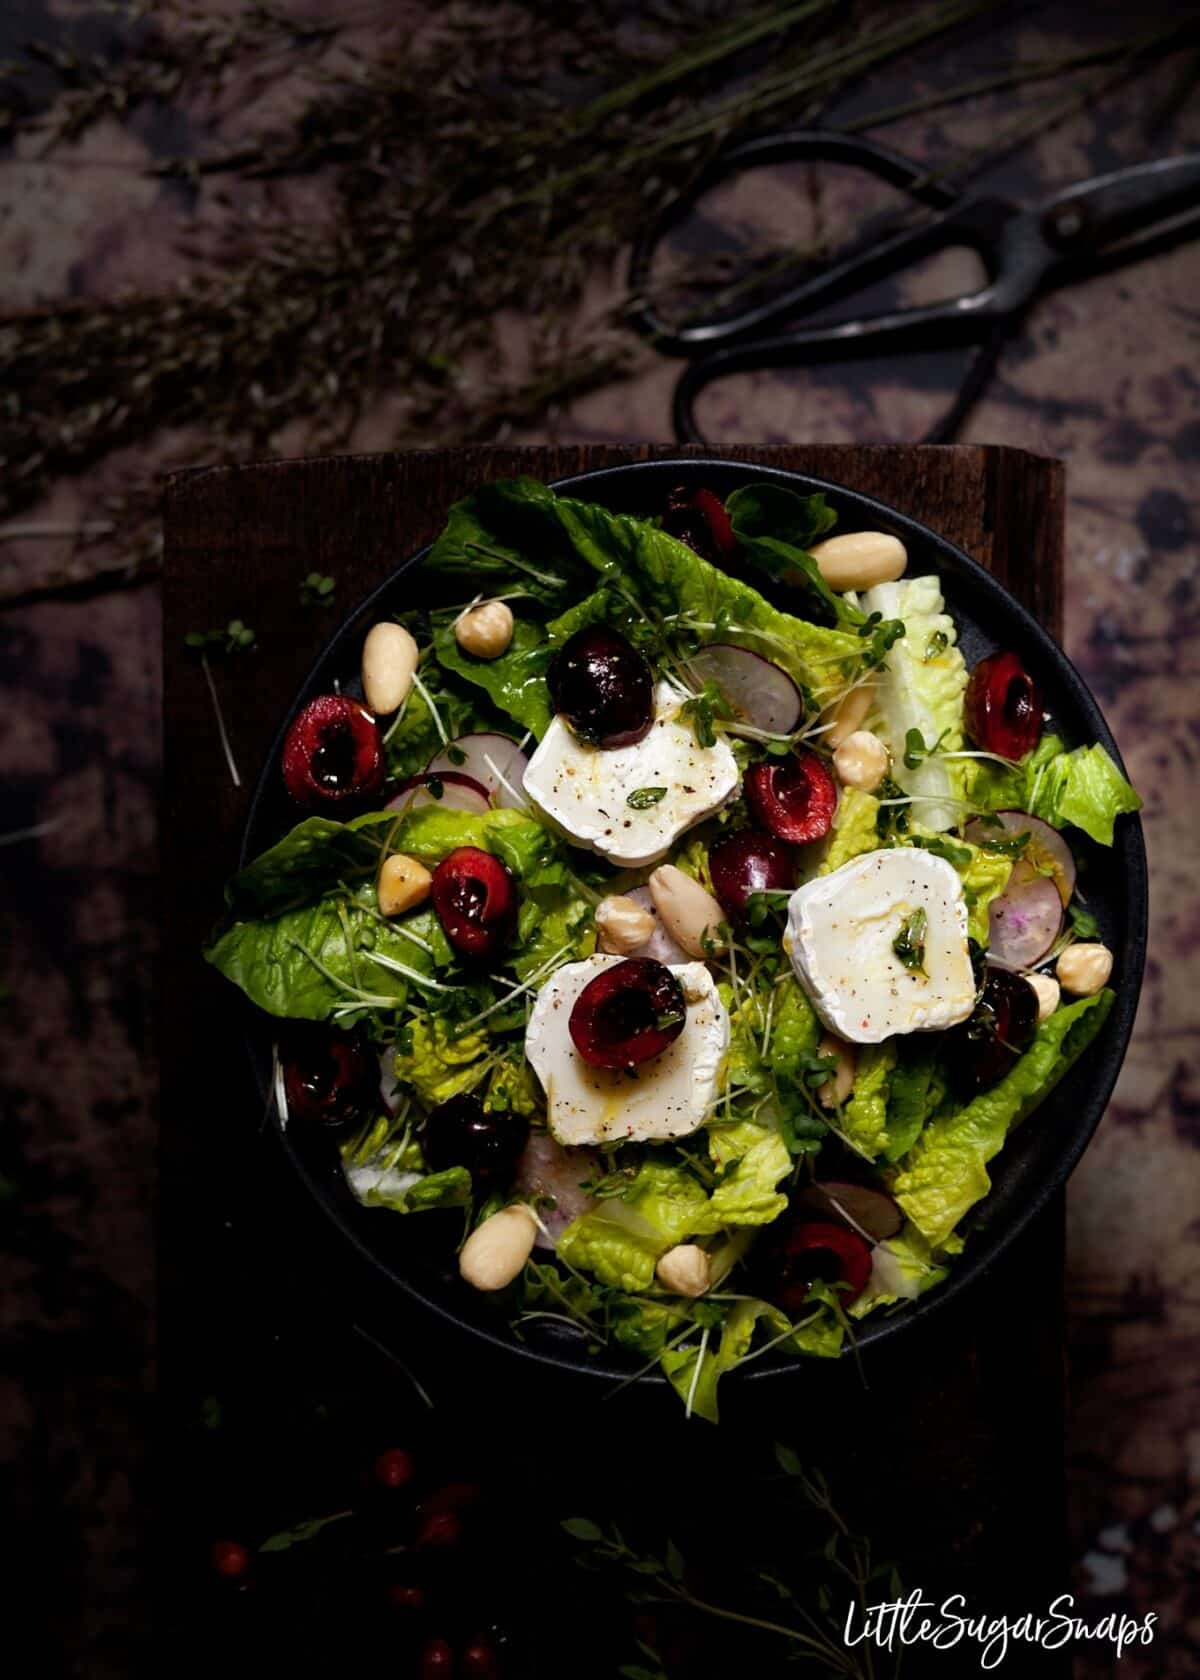 Overhead view of a plate of goats cheese, cherry and thyme salad.